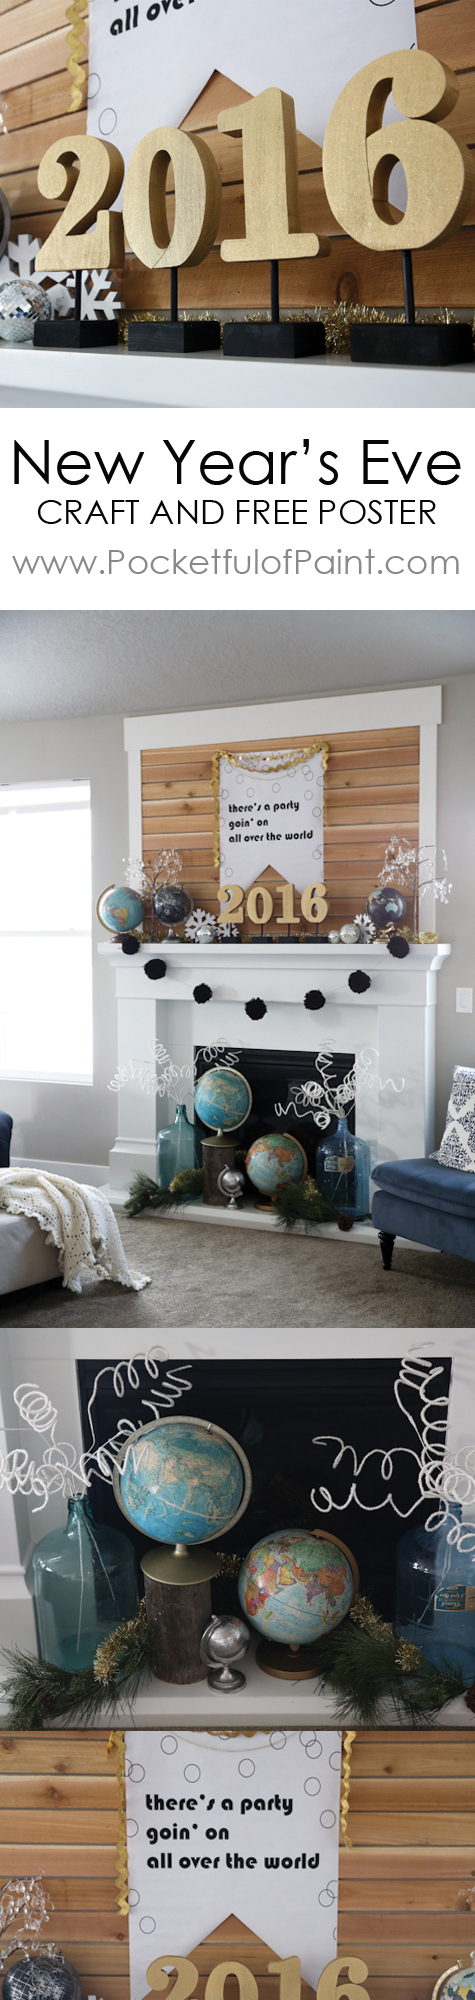 A New Year's Eve Mantle Free Printable and Craft Ideas ...